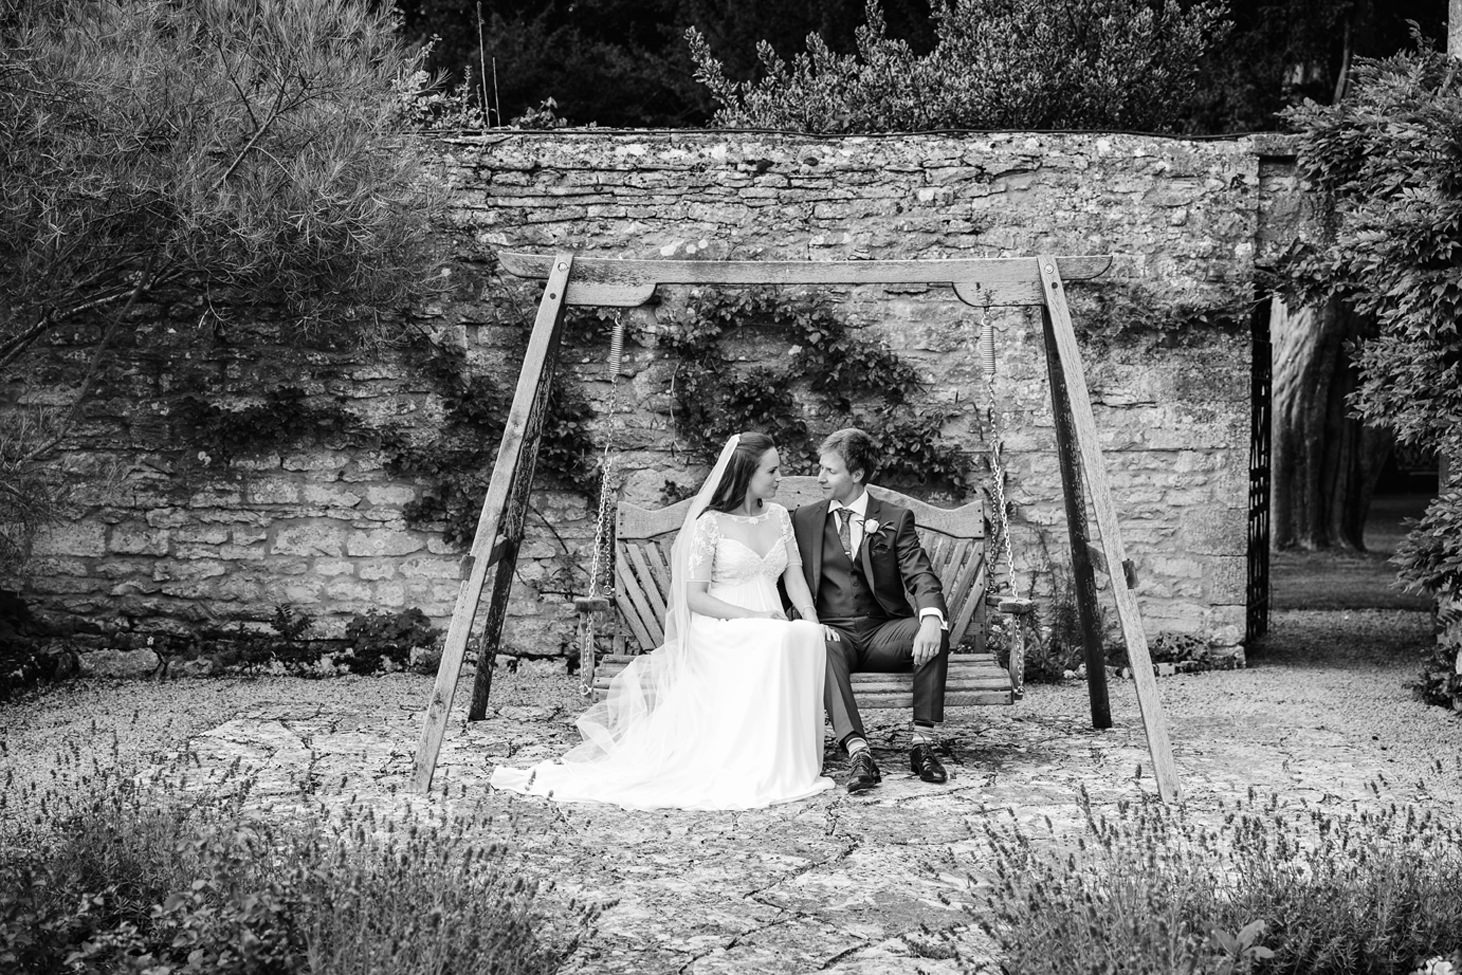 caswell house wedding photography bride and groom on swing